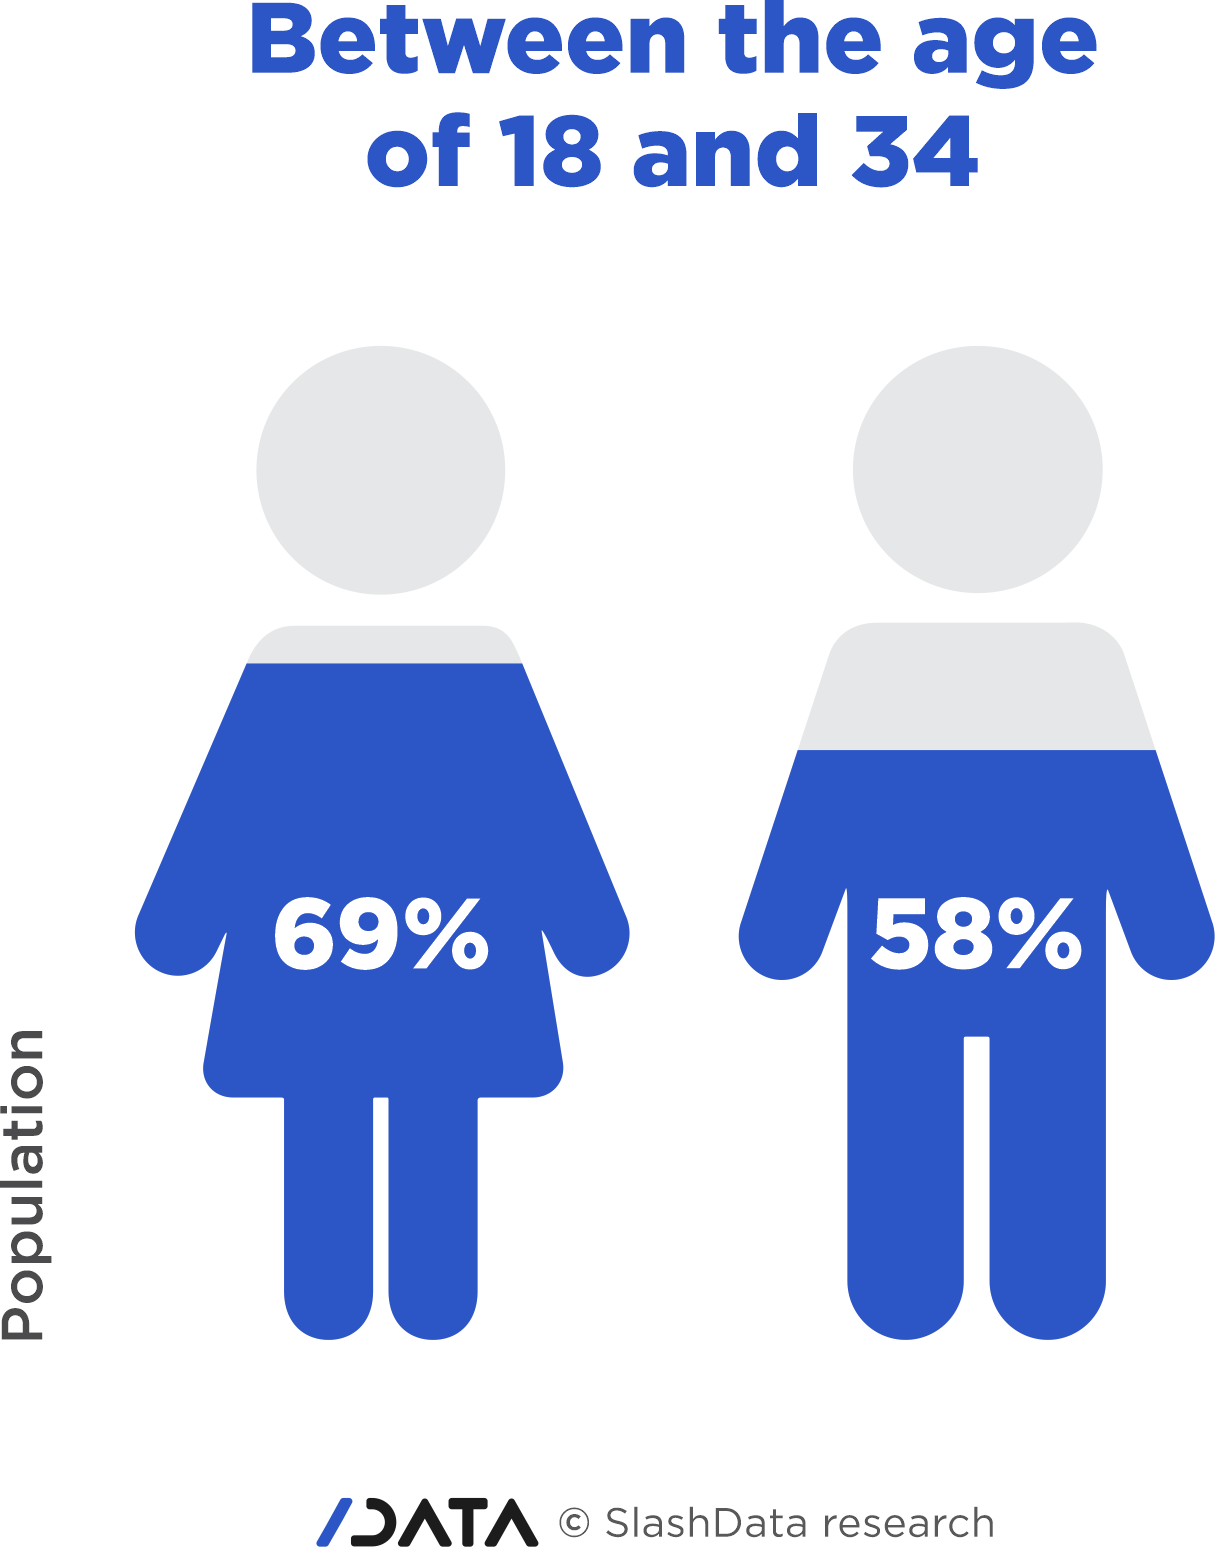 Gender gap - female developers tend to be younger than male developers.